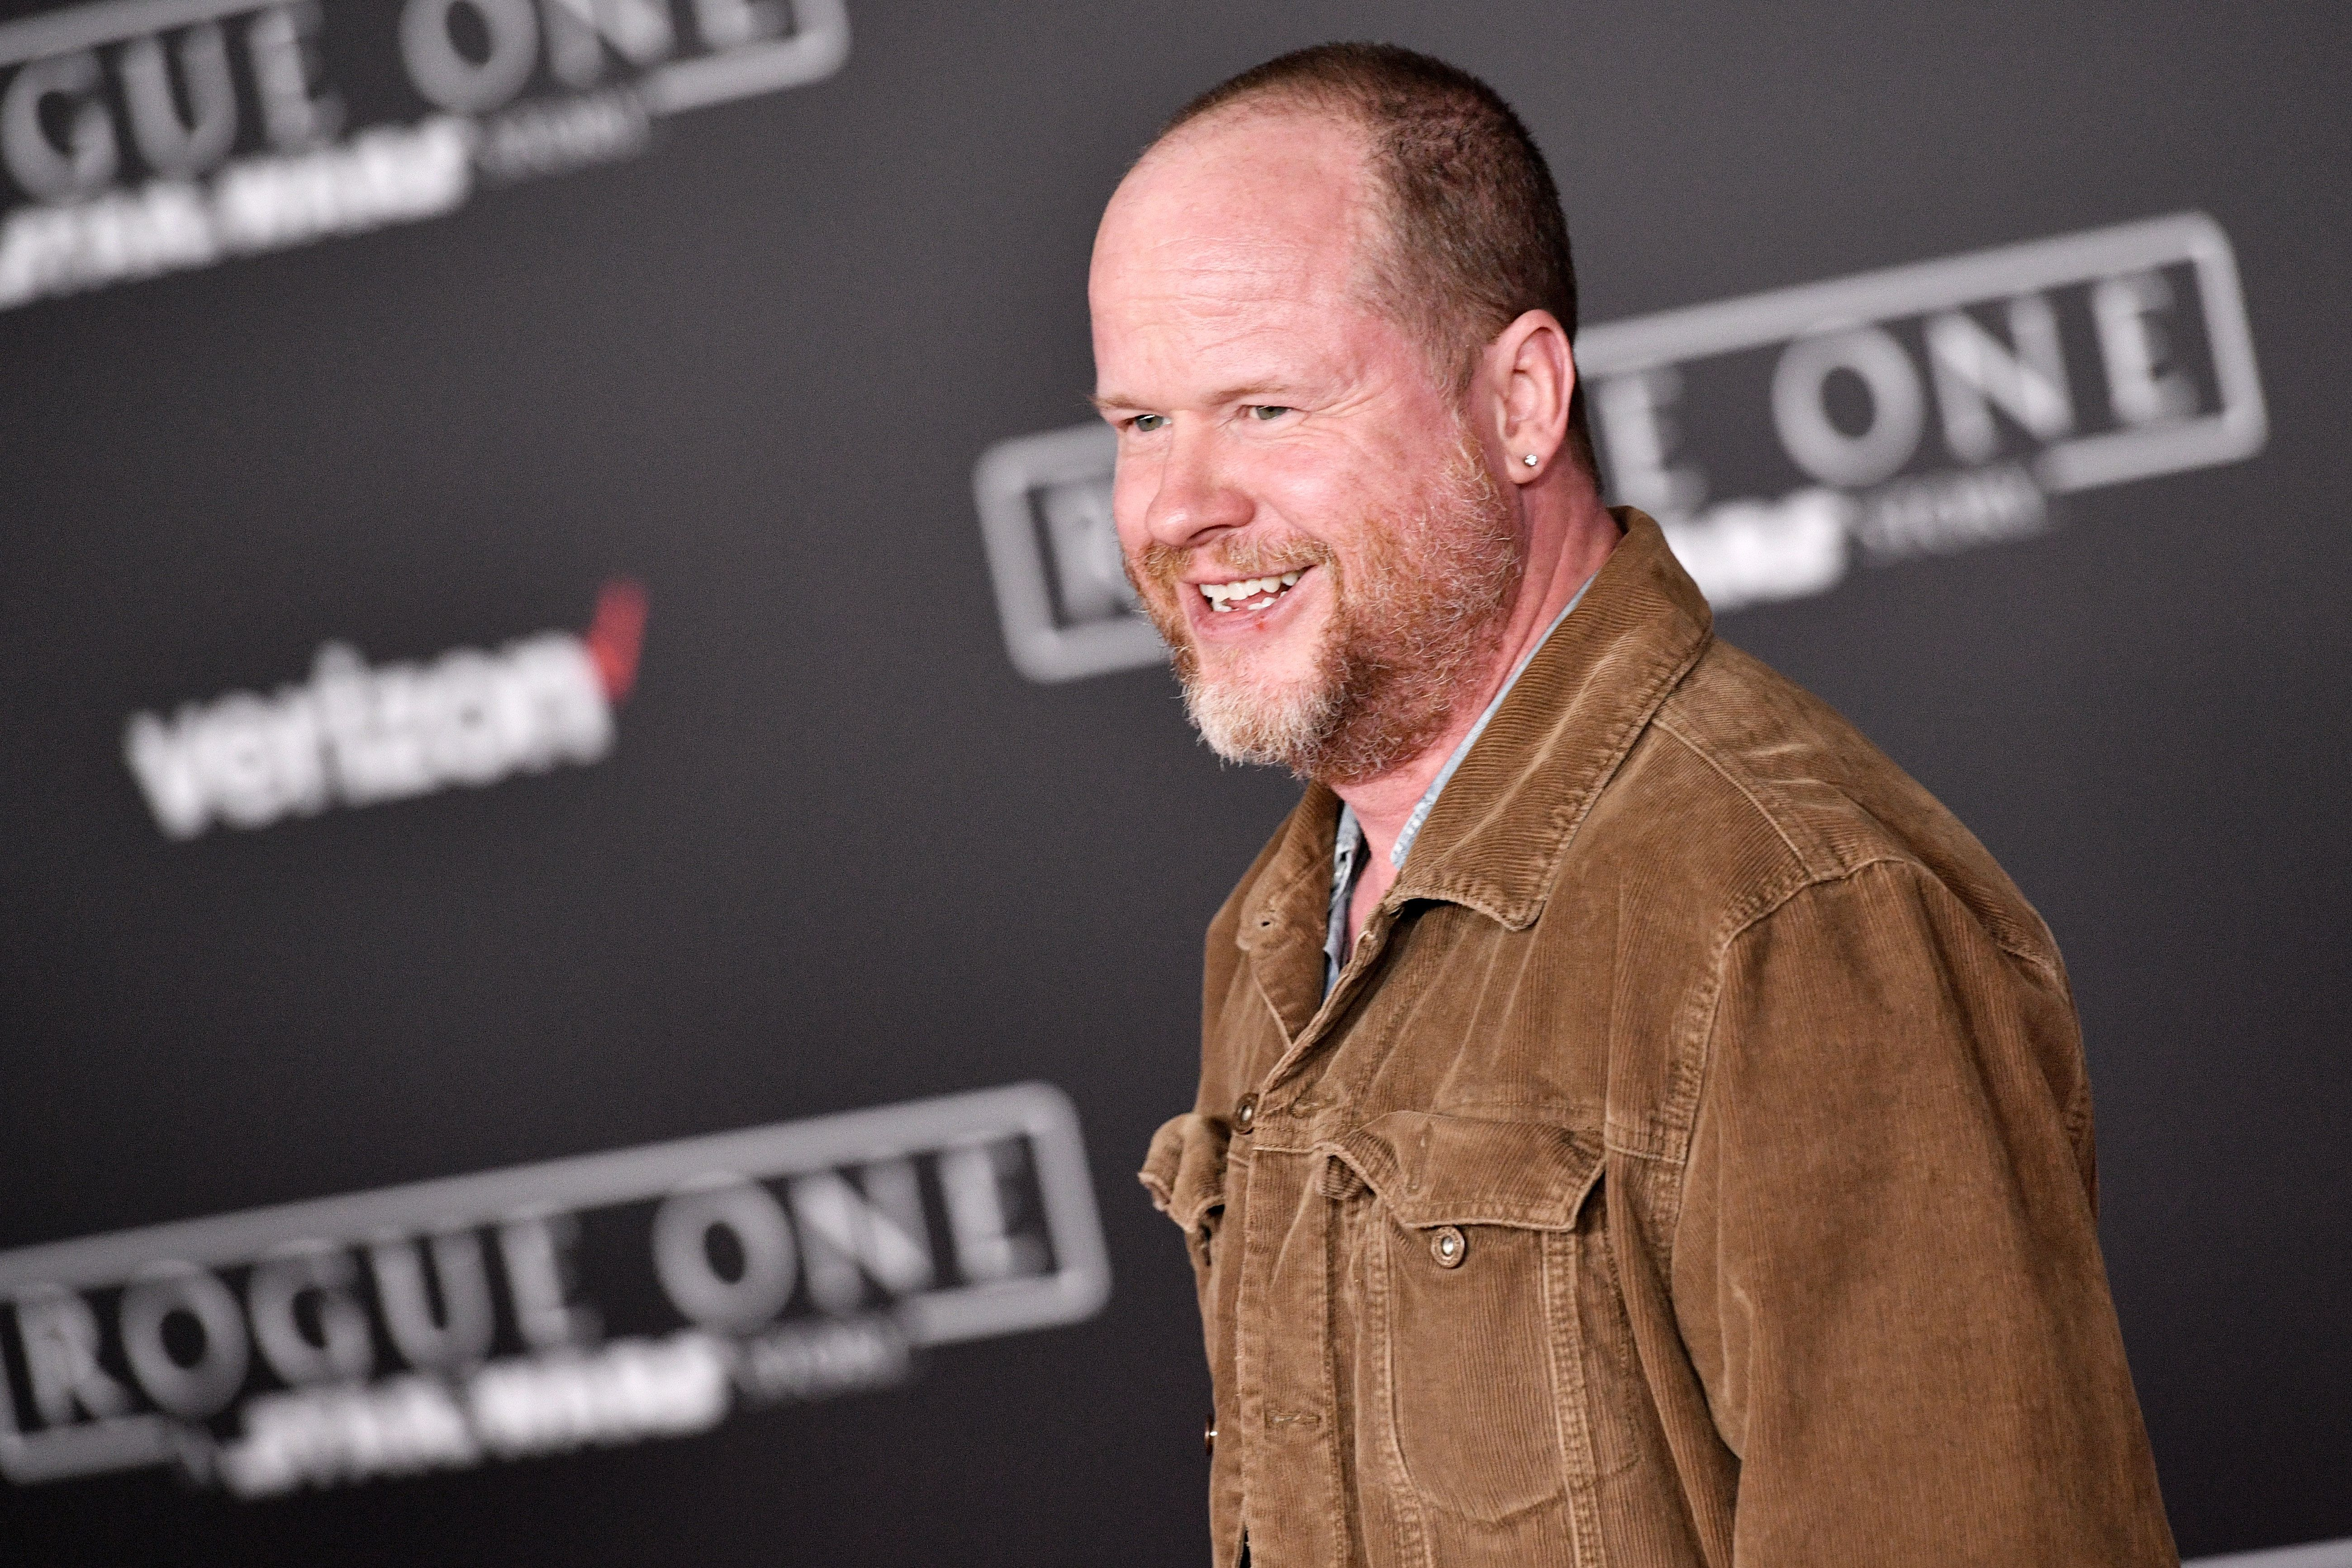 HOLLYWOOD, CA - DECEMBER 10:  Director Joss Whedon attends the premiere of Walt Disney Pictures and Lucasfilm's 'Rogue One: A Star Wars Story' at the Pantages Theatre on December 10, 2016 in Hollywood, California.  (Photo by Mike Windle/Getty Images)